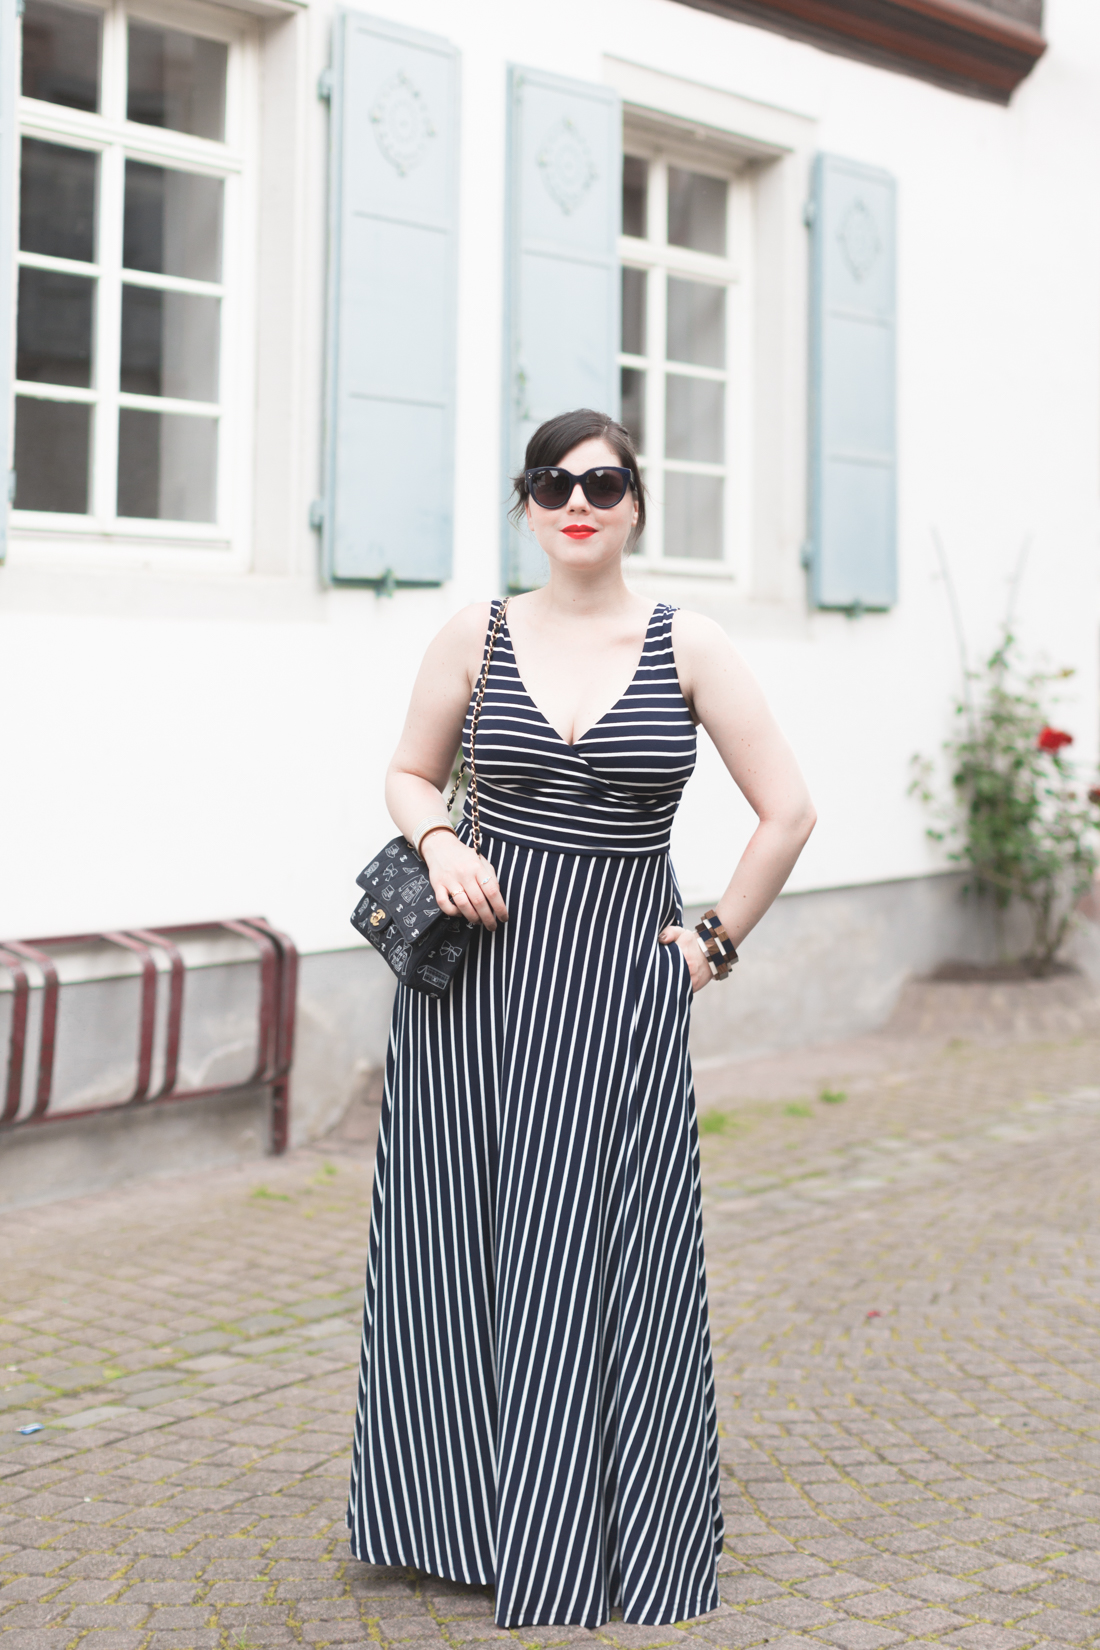 1100 robe mariniere stripe dress boden copyright Pauline paulinefashionblog.com 8 Stripes